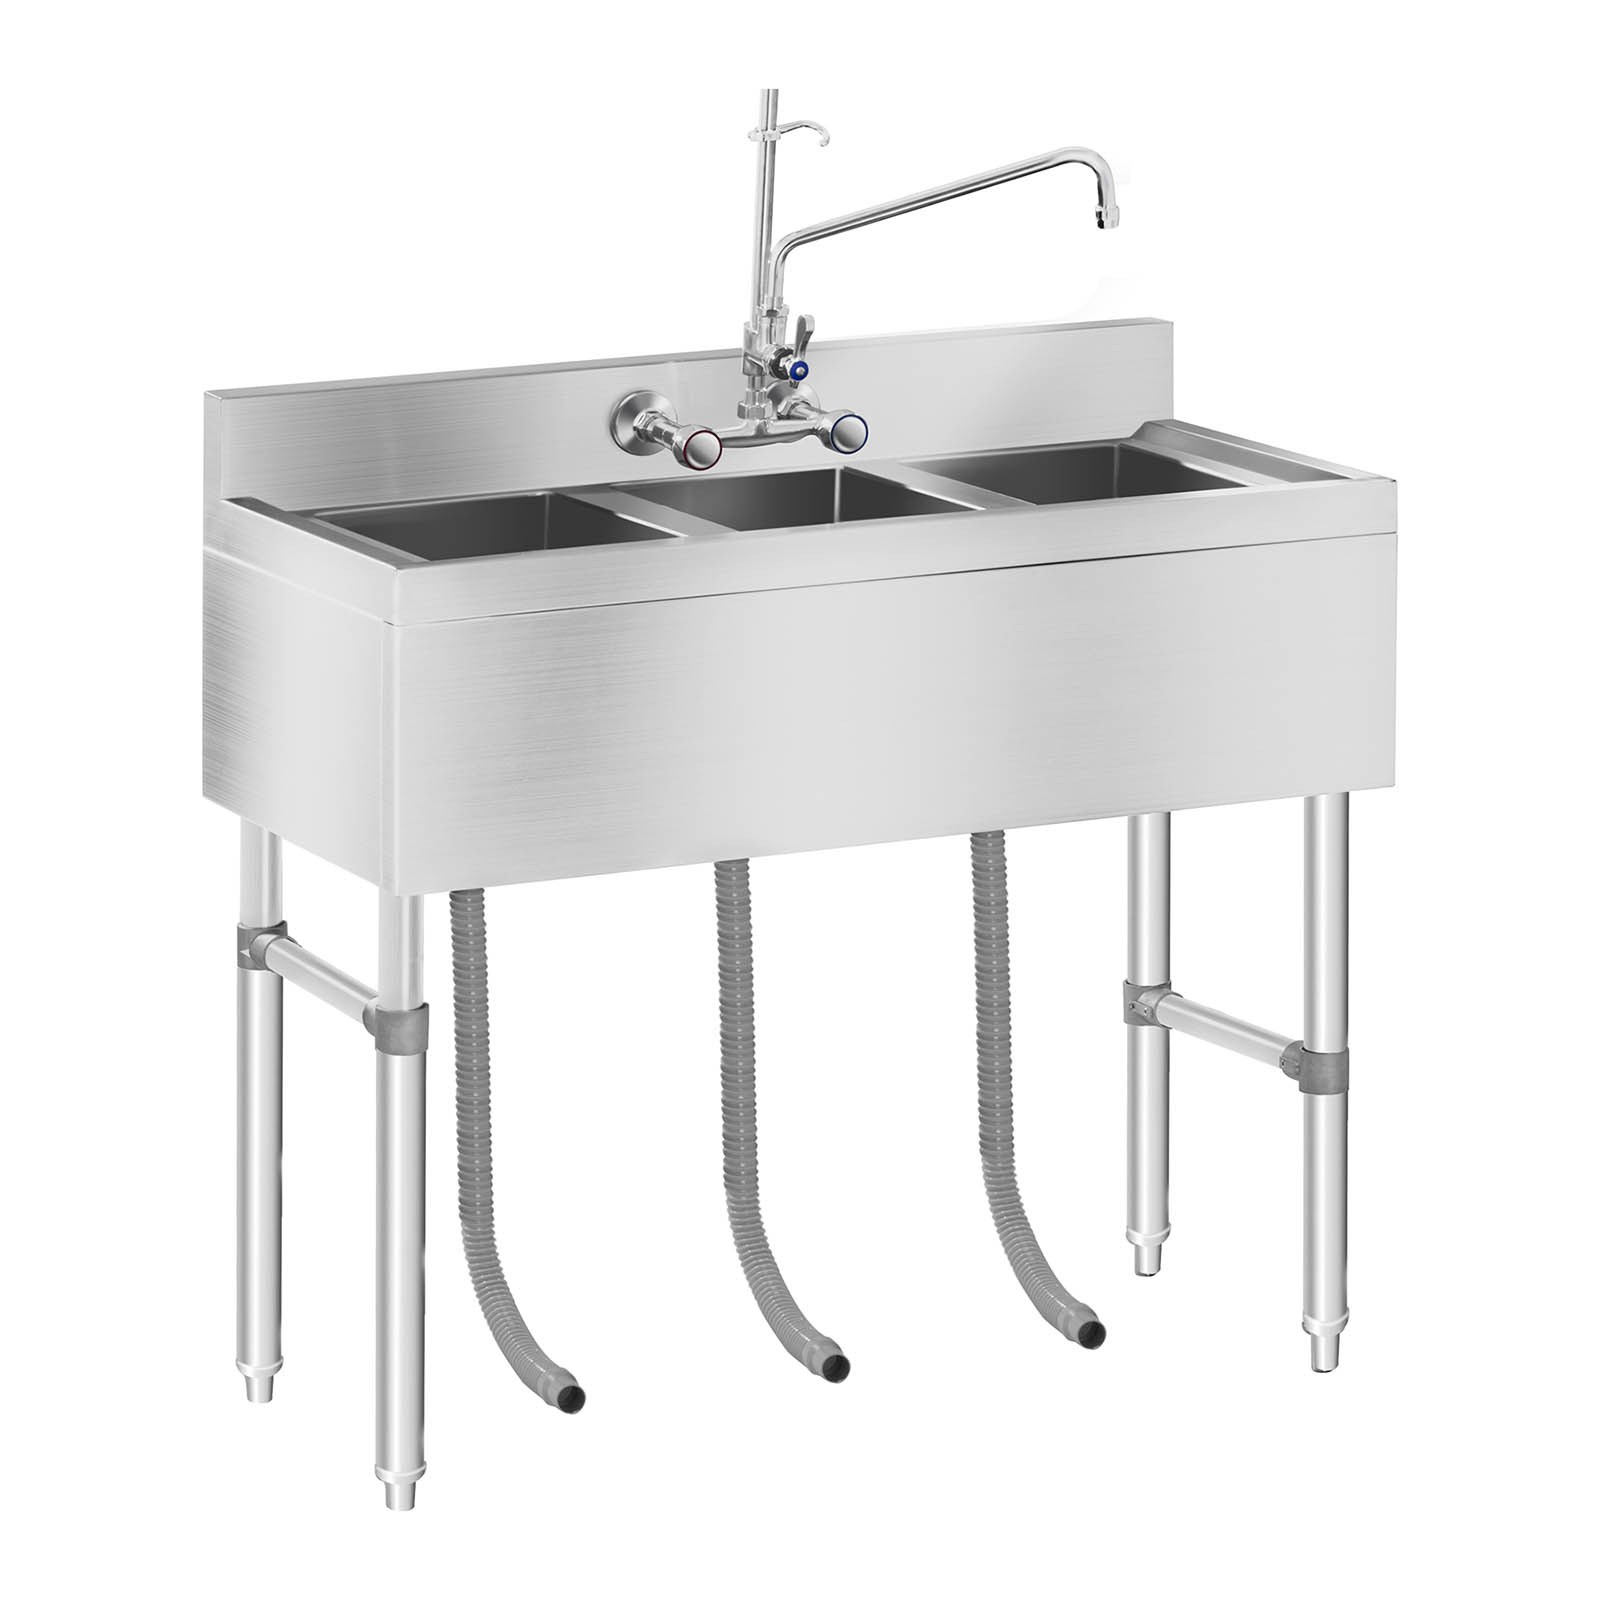 big kitchen sink sink large kitchen sink unit 3 basin stainless 1653